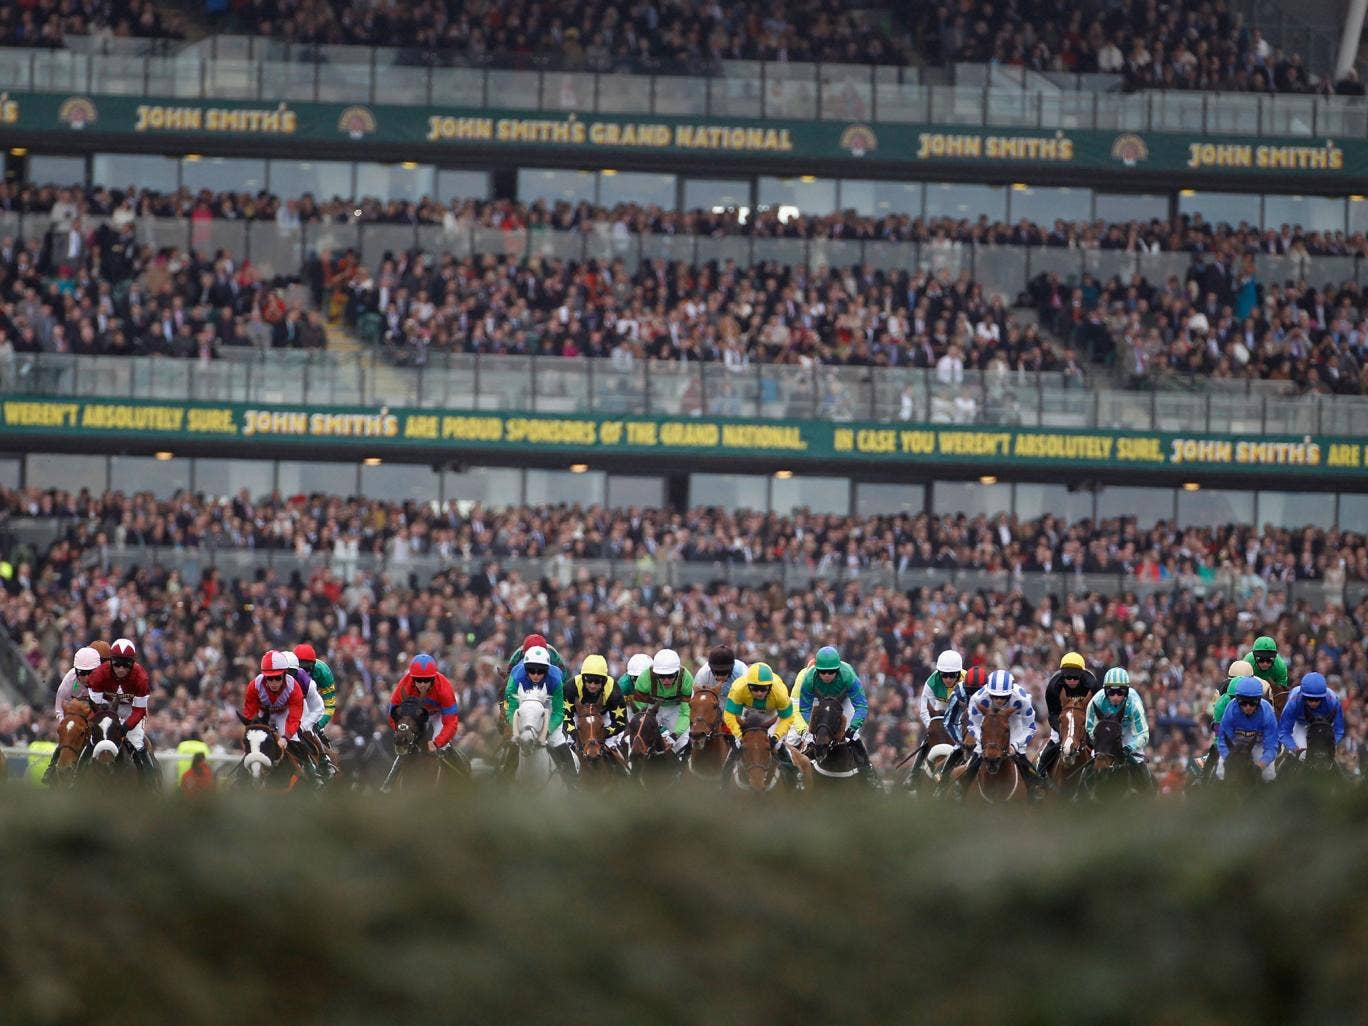 Runners heading towards the first fence during 2011 Grand National, when one horse, Ornais, broke its neck and Dooneys Gate broke its back